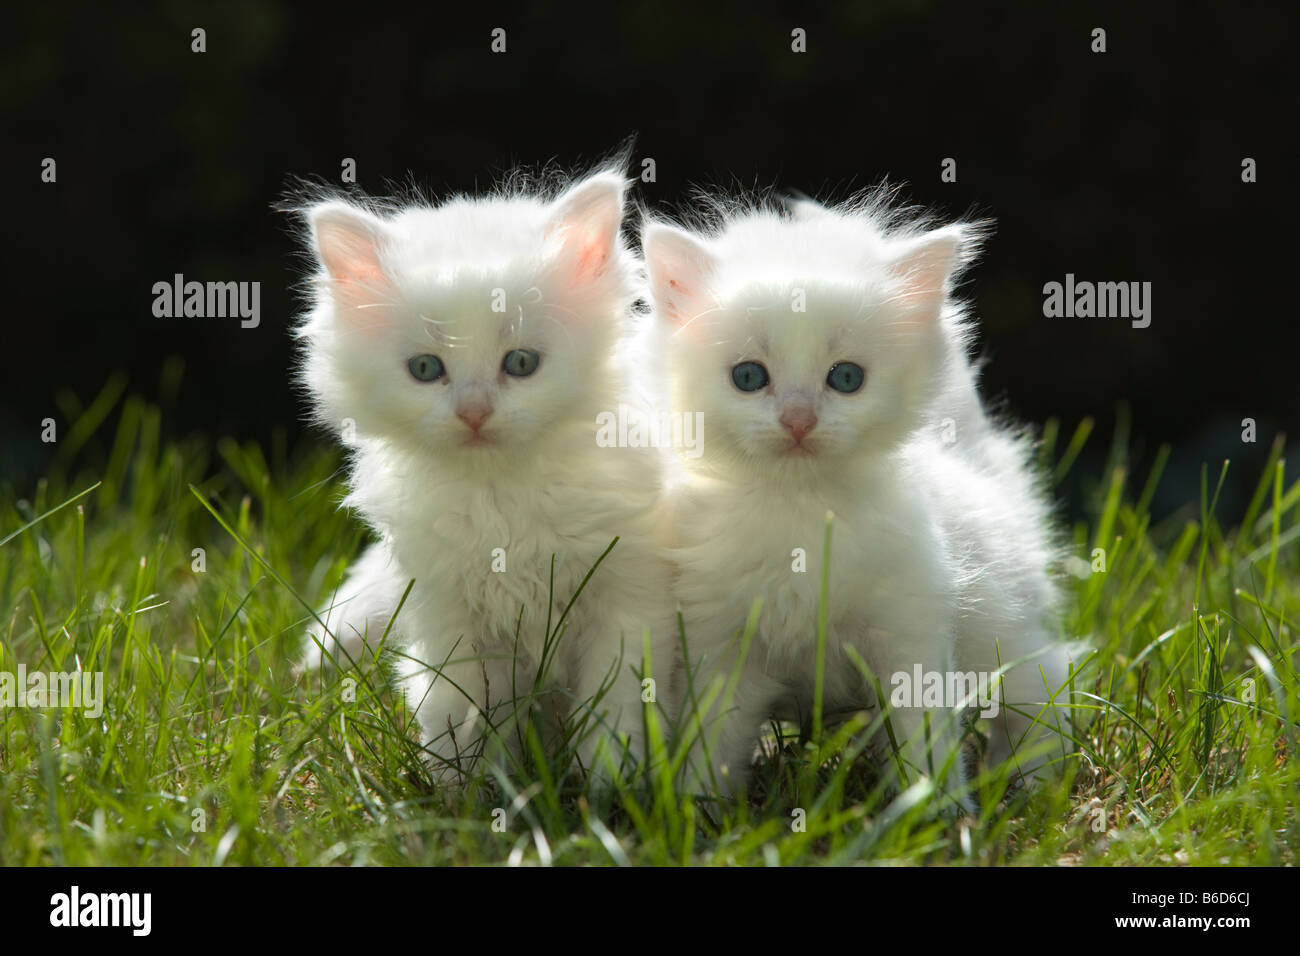 Two 6 Week Old Long Haired White Kittens On Grass In Garden Stock